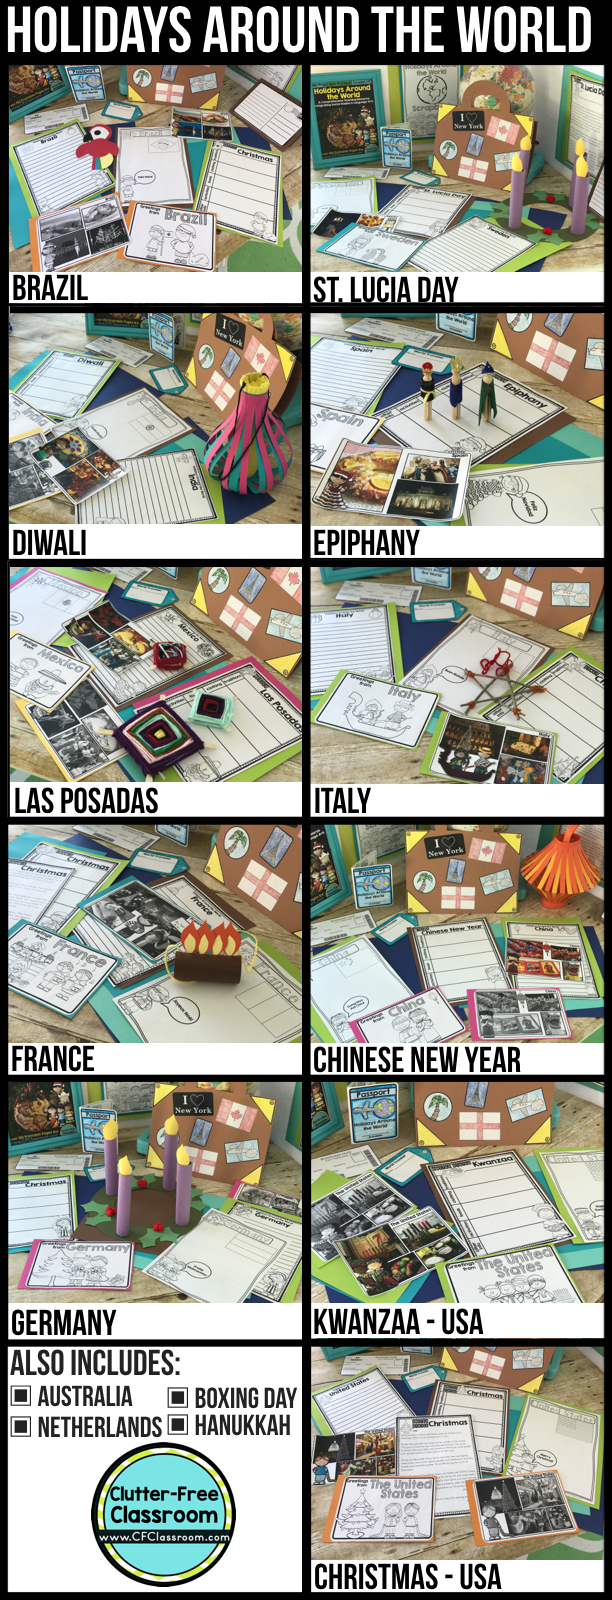 A Holidays Around the World Unit full of activities, close reads, crafts, writing, & social studies lessons for 12 countries / holidays makes learning in December fun for students. Make a passport, suitcase, & map to track travel. Learn about cultures through books, art, & videos. Clutter-Free Classroom has created printables to use as is or in interactive notebooks & lap books. Christmas Around the World is perfect for kids in 1st, 2nd, 3rd, 4th, 5th & Homeschool.